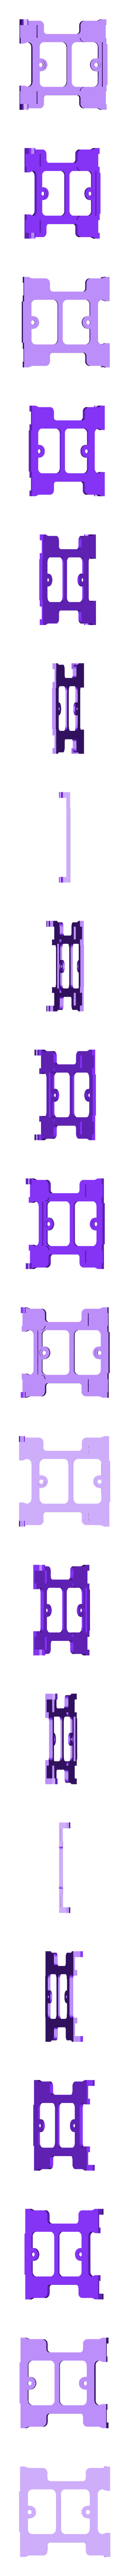 SNESHanger.stl Download free STL file Modular SNES Game Wall Hangers (Super Nintendo) UPDATED 2015-08-24 • 3D printing object, tonyyoungblood